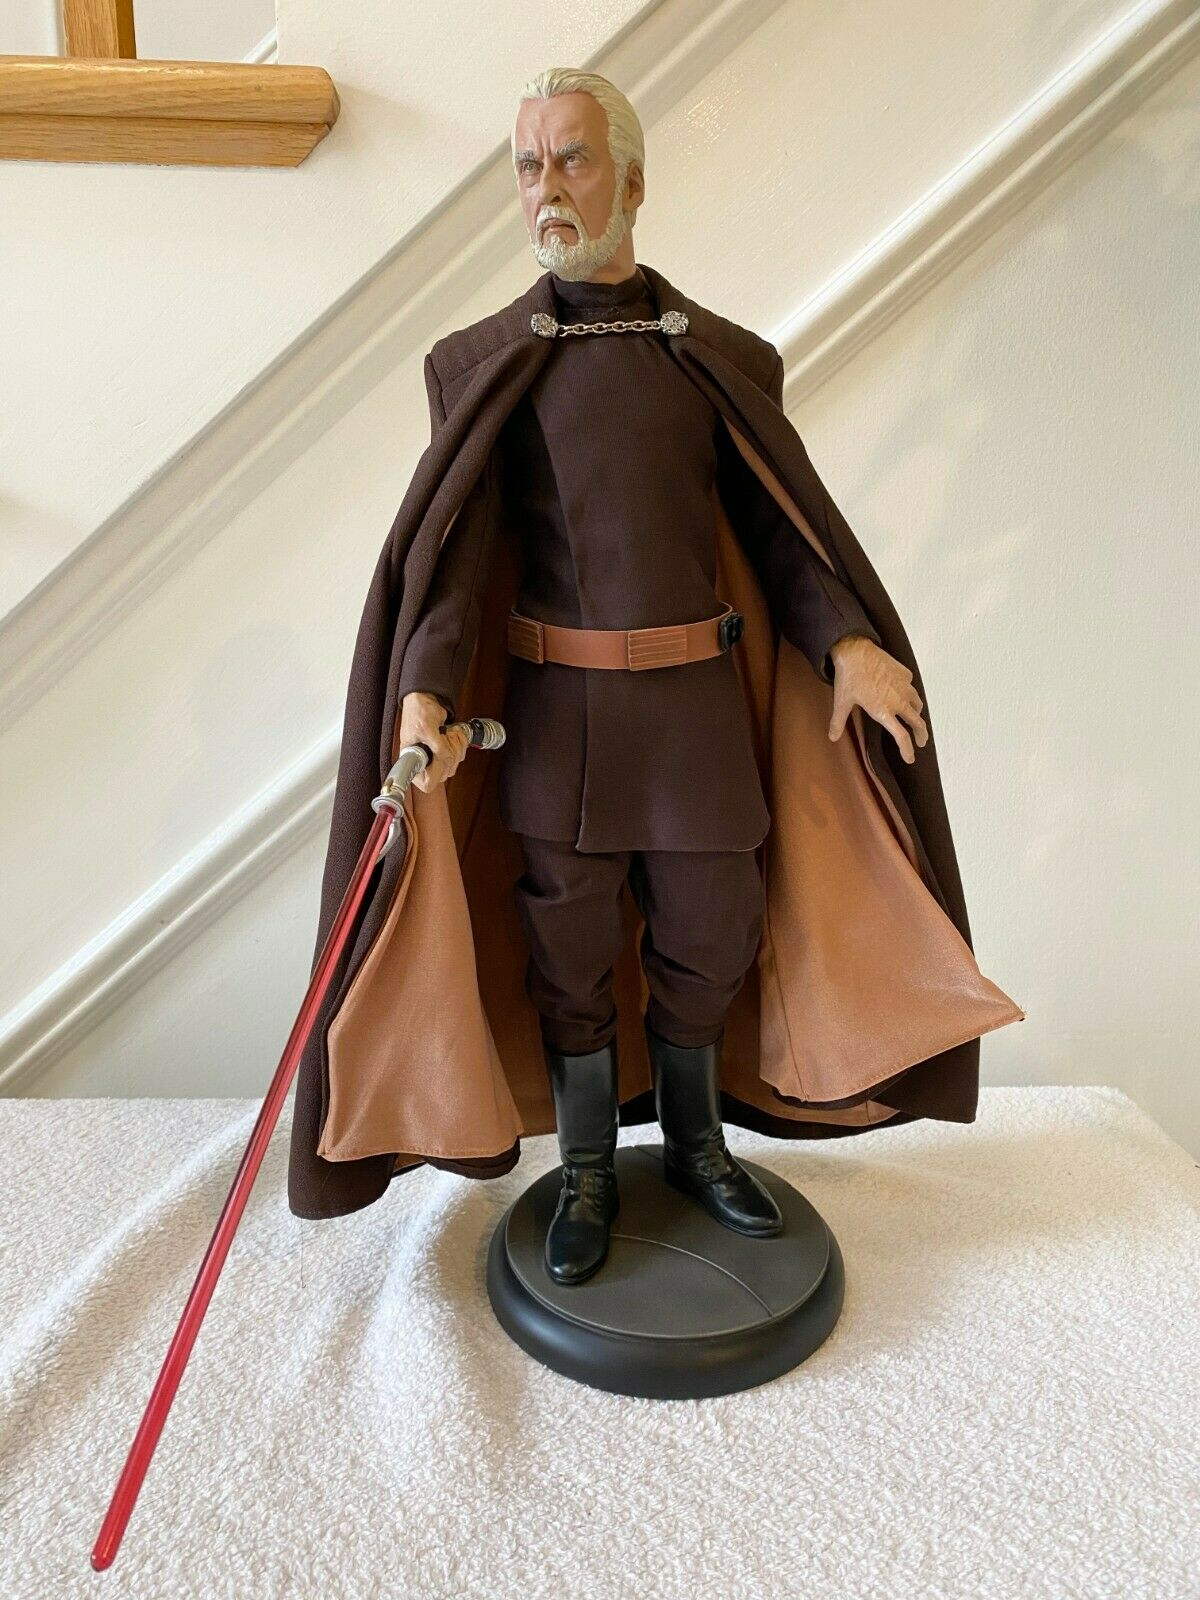 SIDESHOW STAR WARS COUNT DOOKU PREMIUM FORMAT FIGURE RARE 153/750 on eBay thumbnail